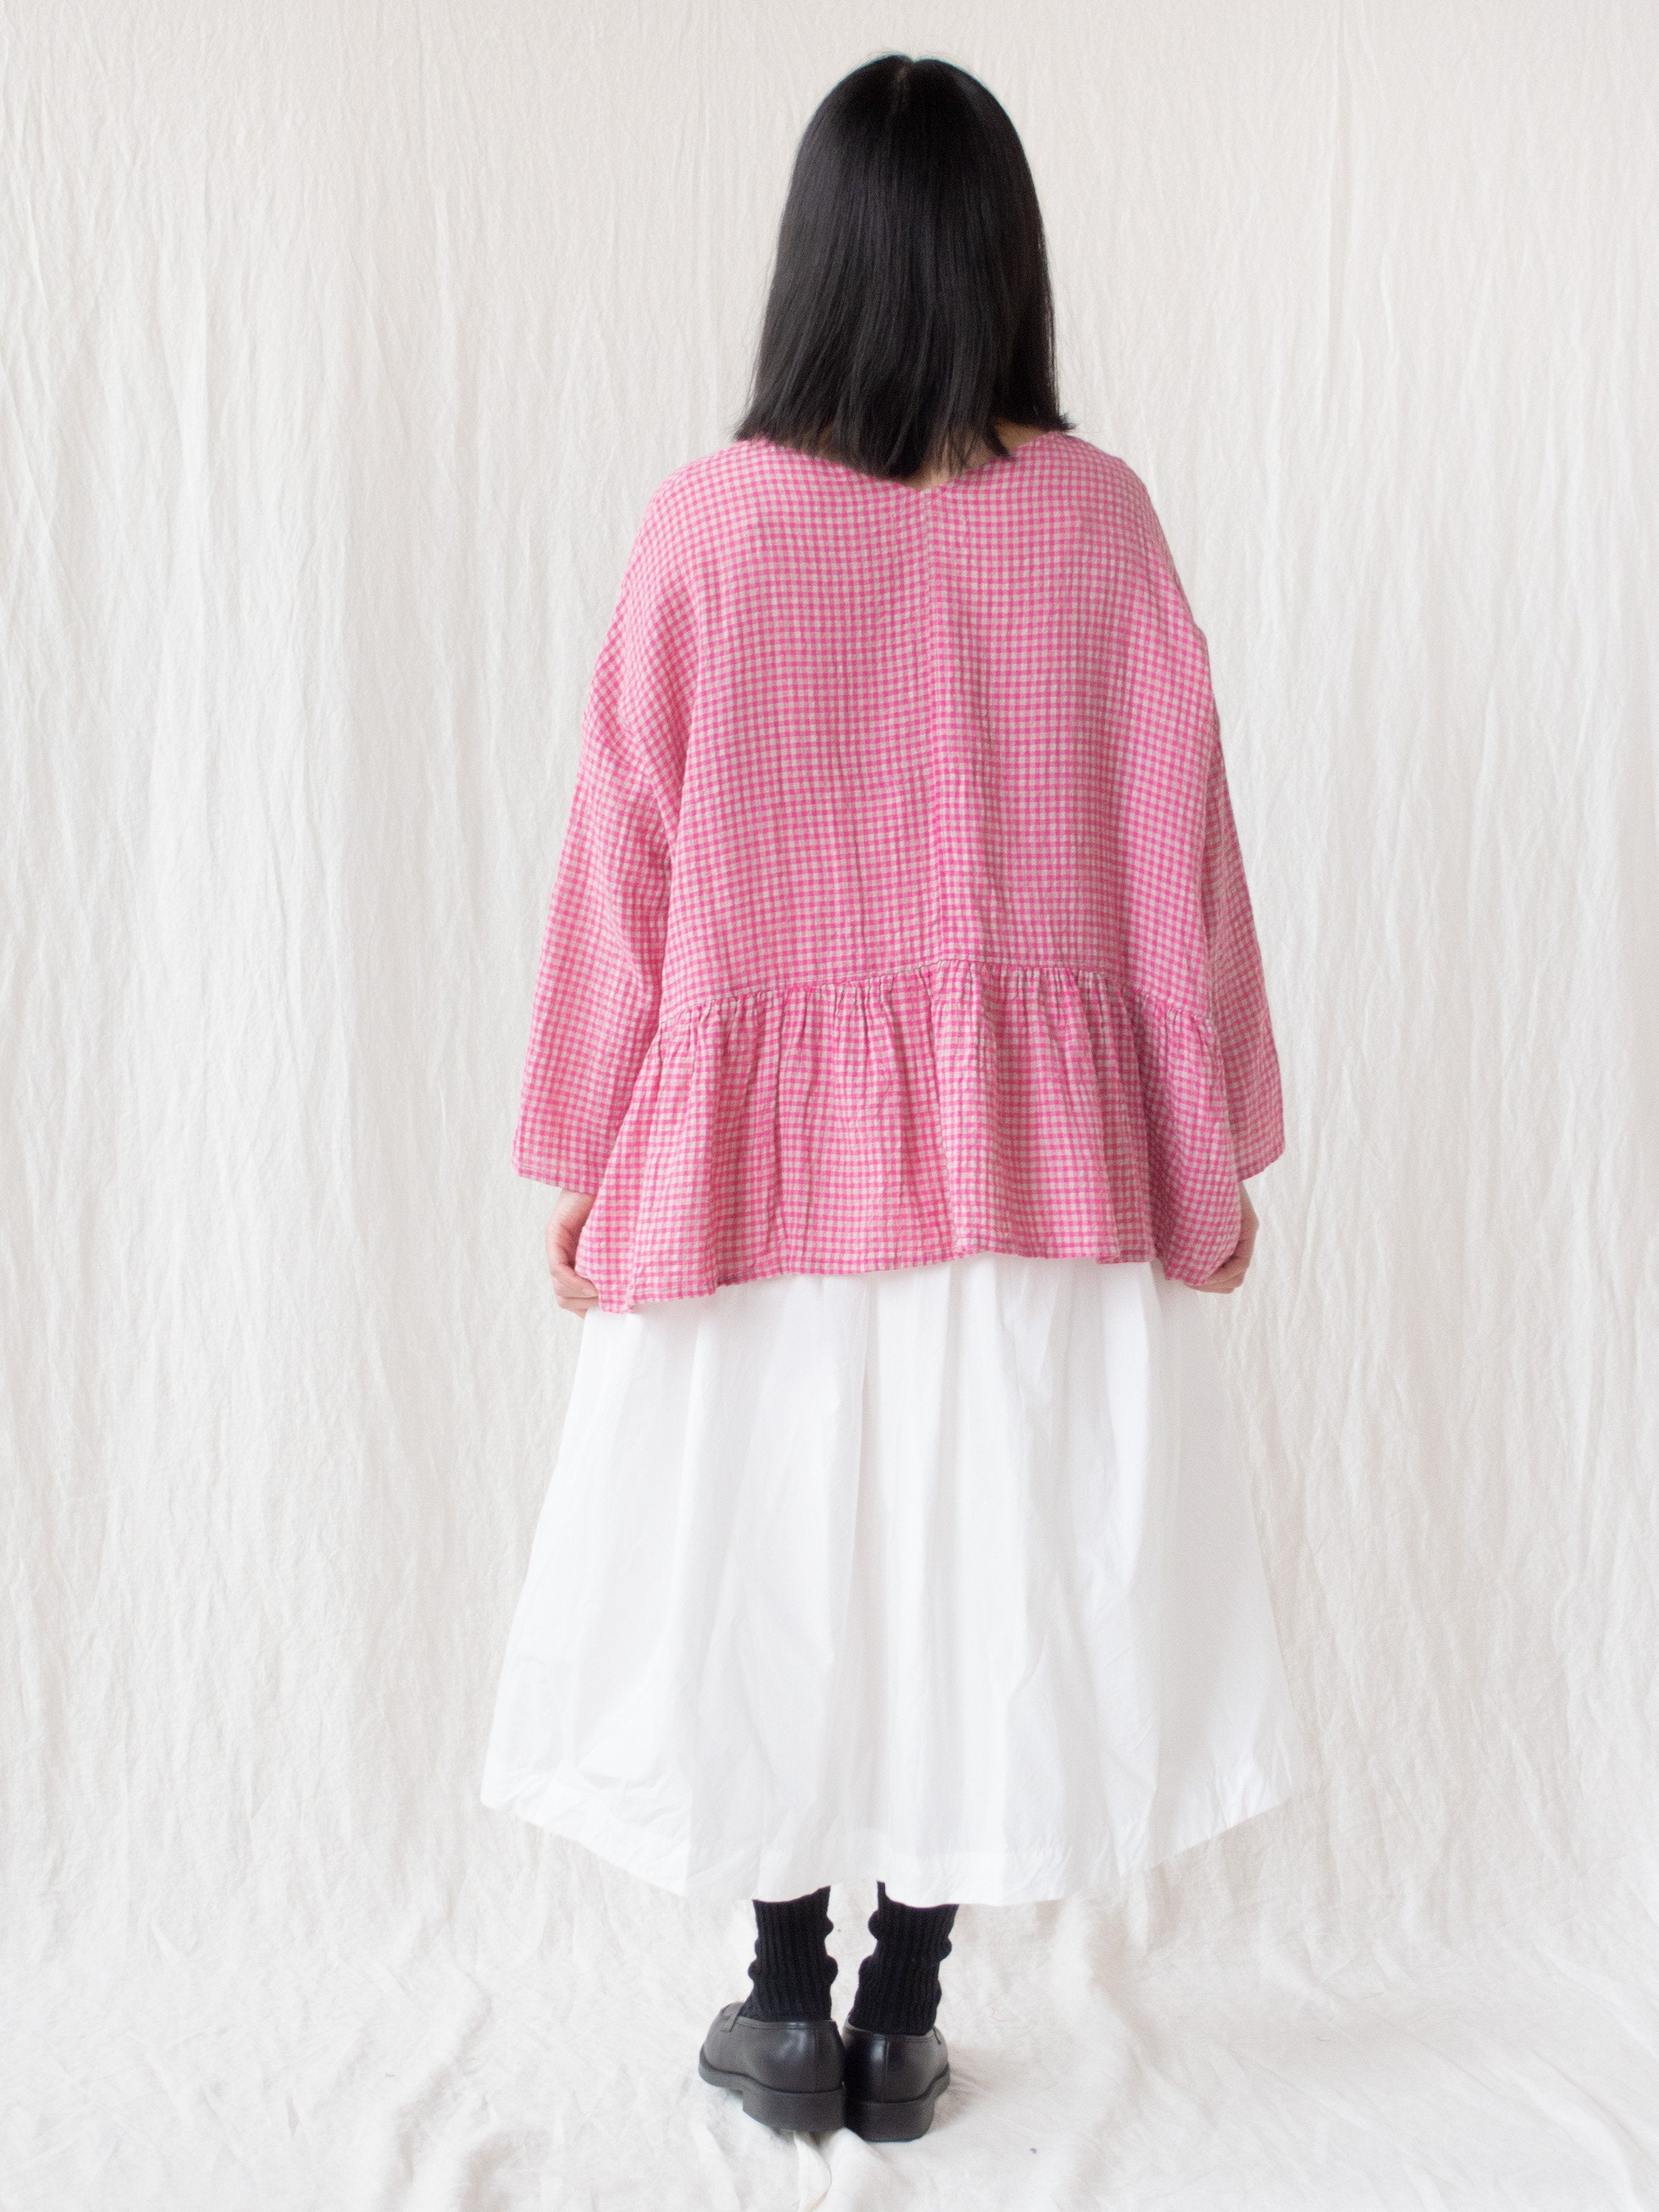 Namu Shop - Ichi Antiquites Typewriter Cotton Wrap Skirt - White